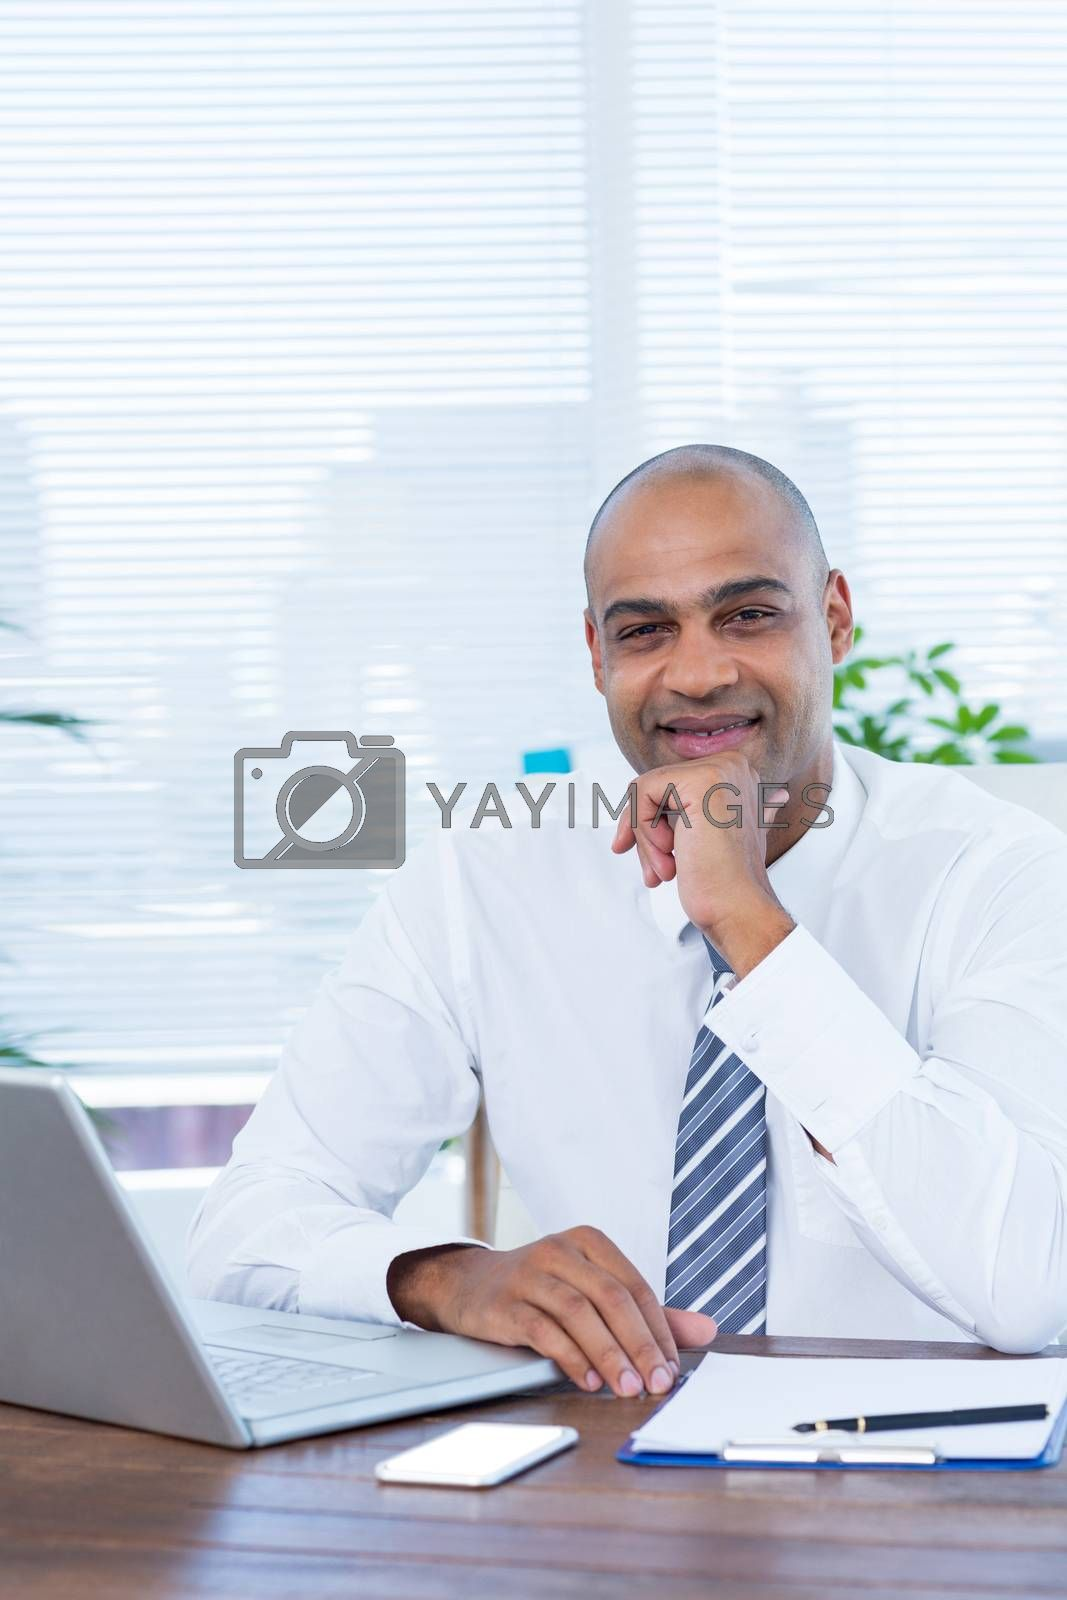 Royalty free image of Smiling businessman looking at the camera by Wavebreakmedia